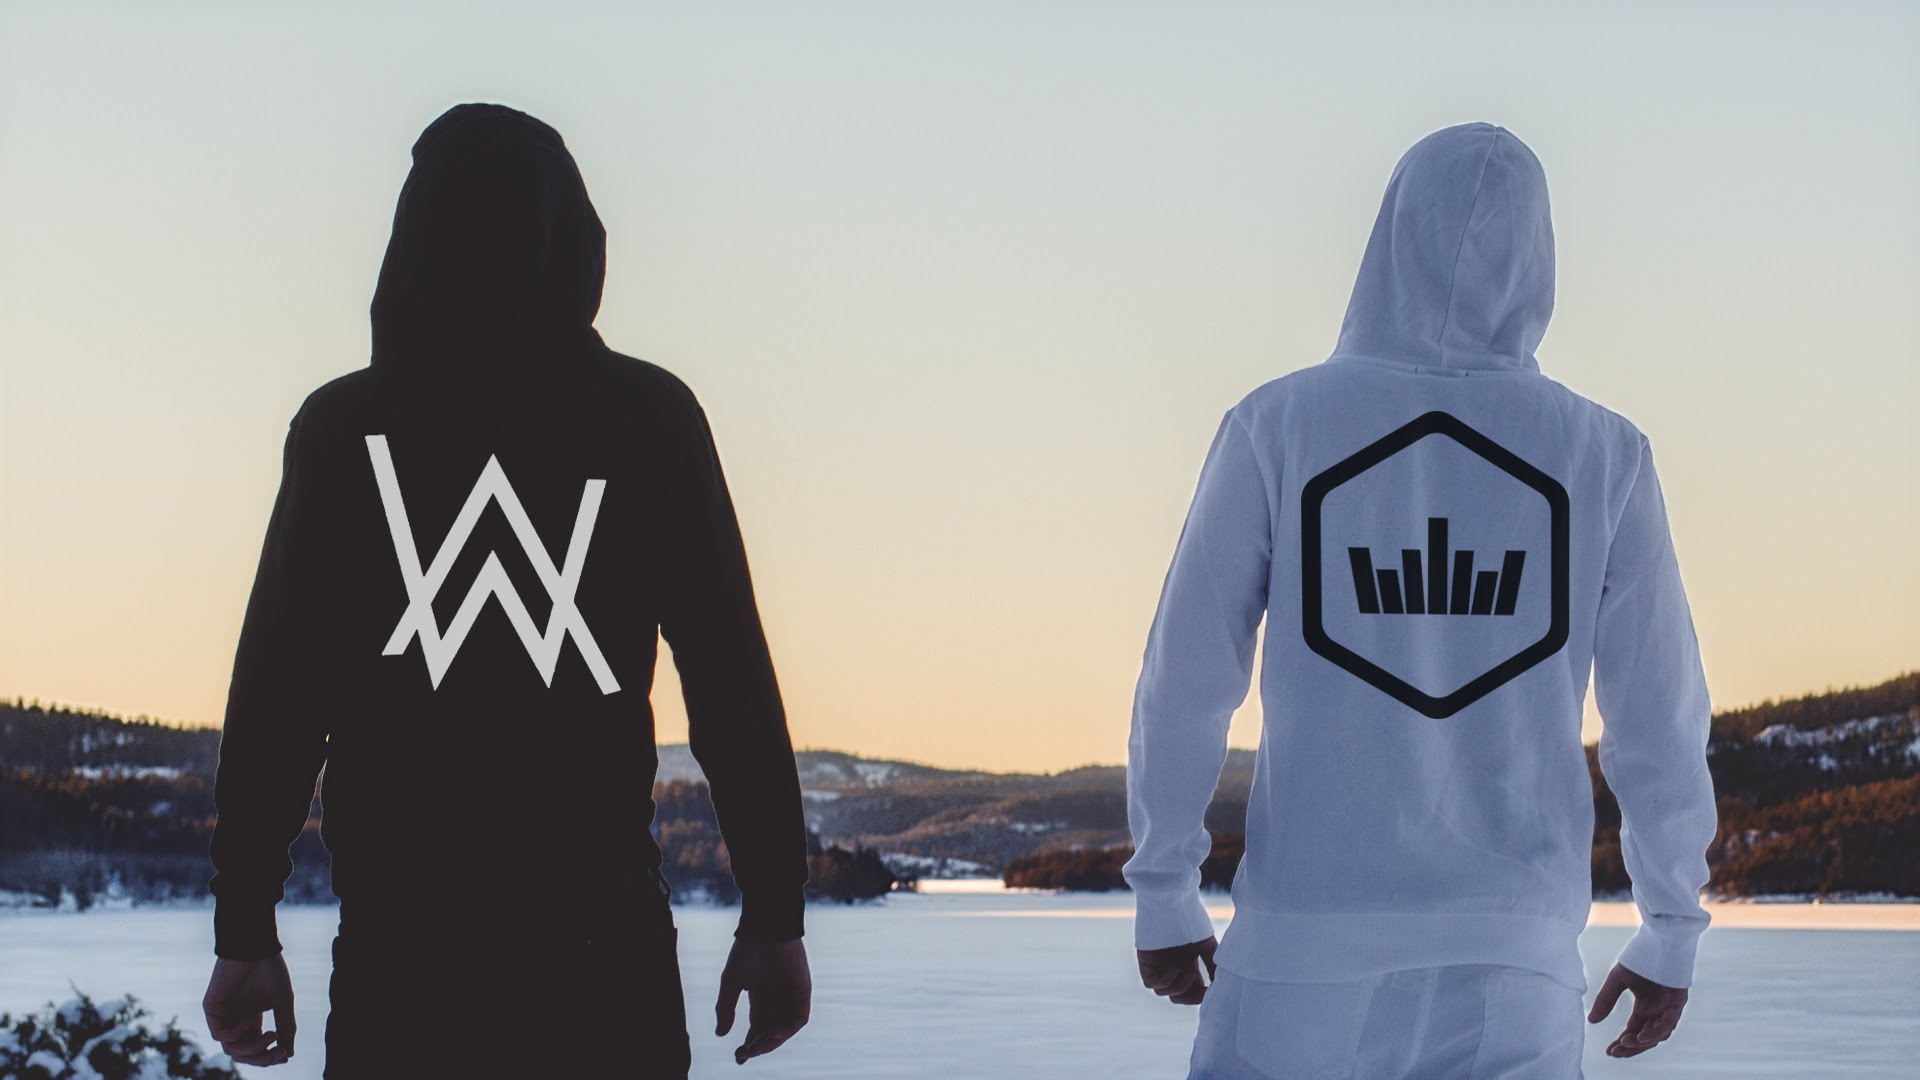 3 Hd Alan Walker Wallpapers